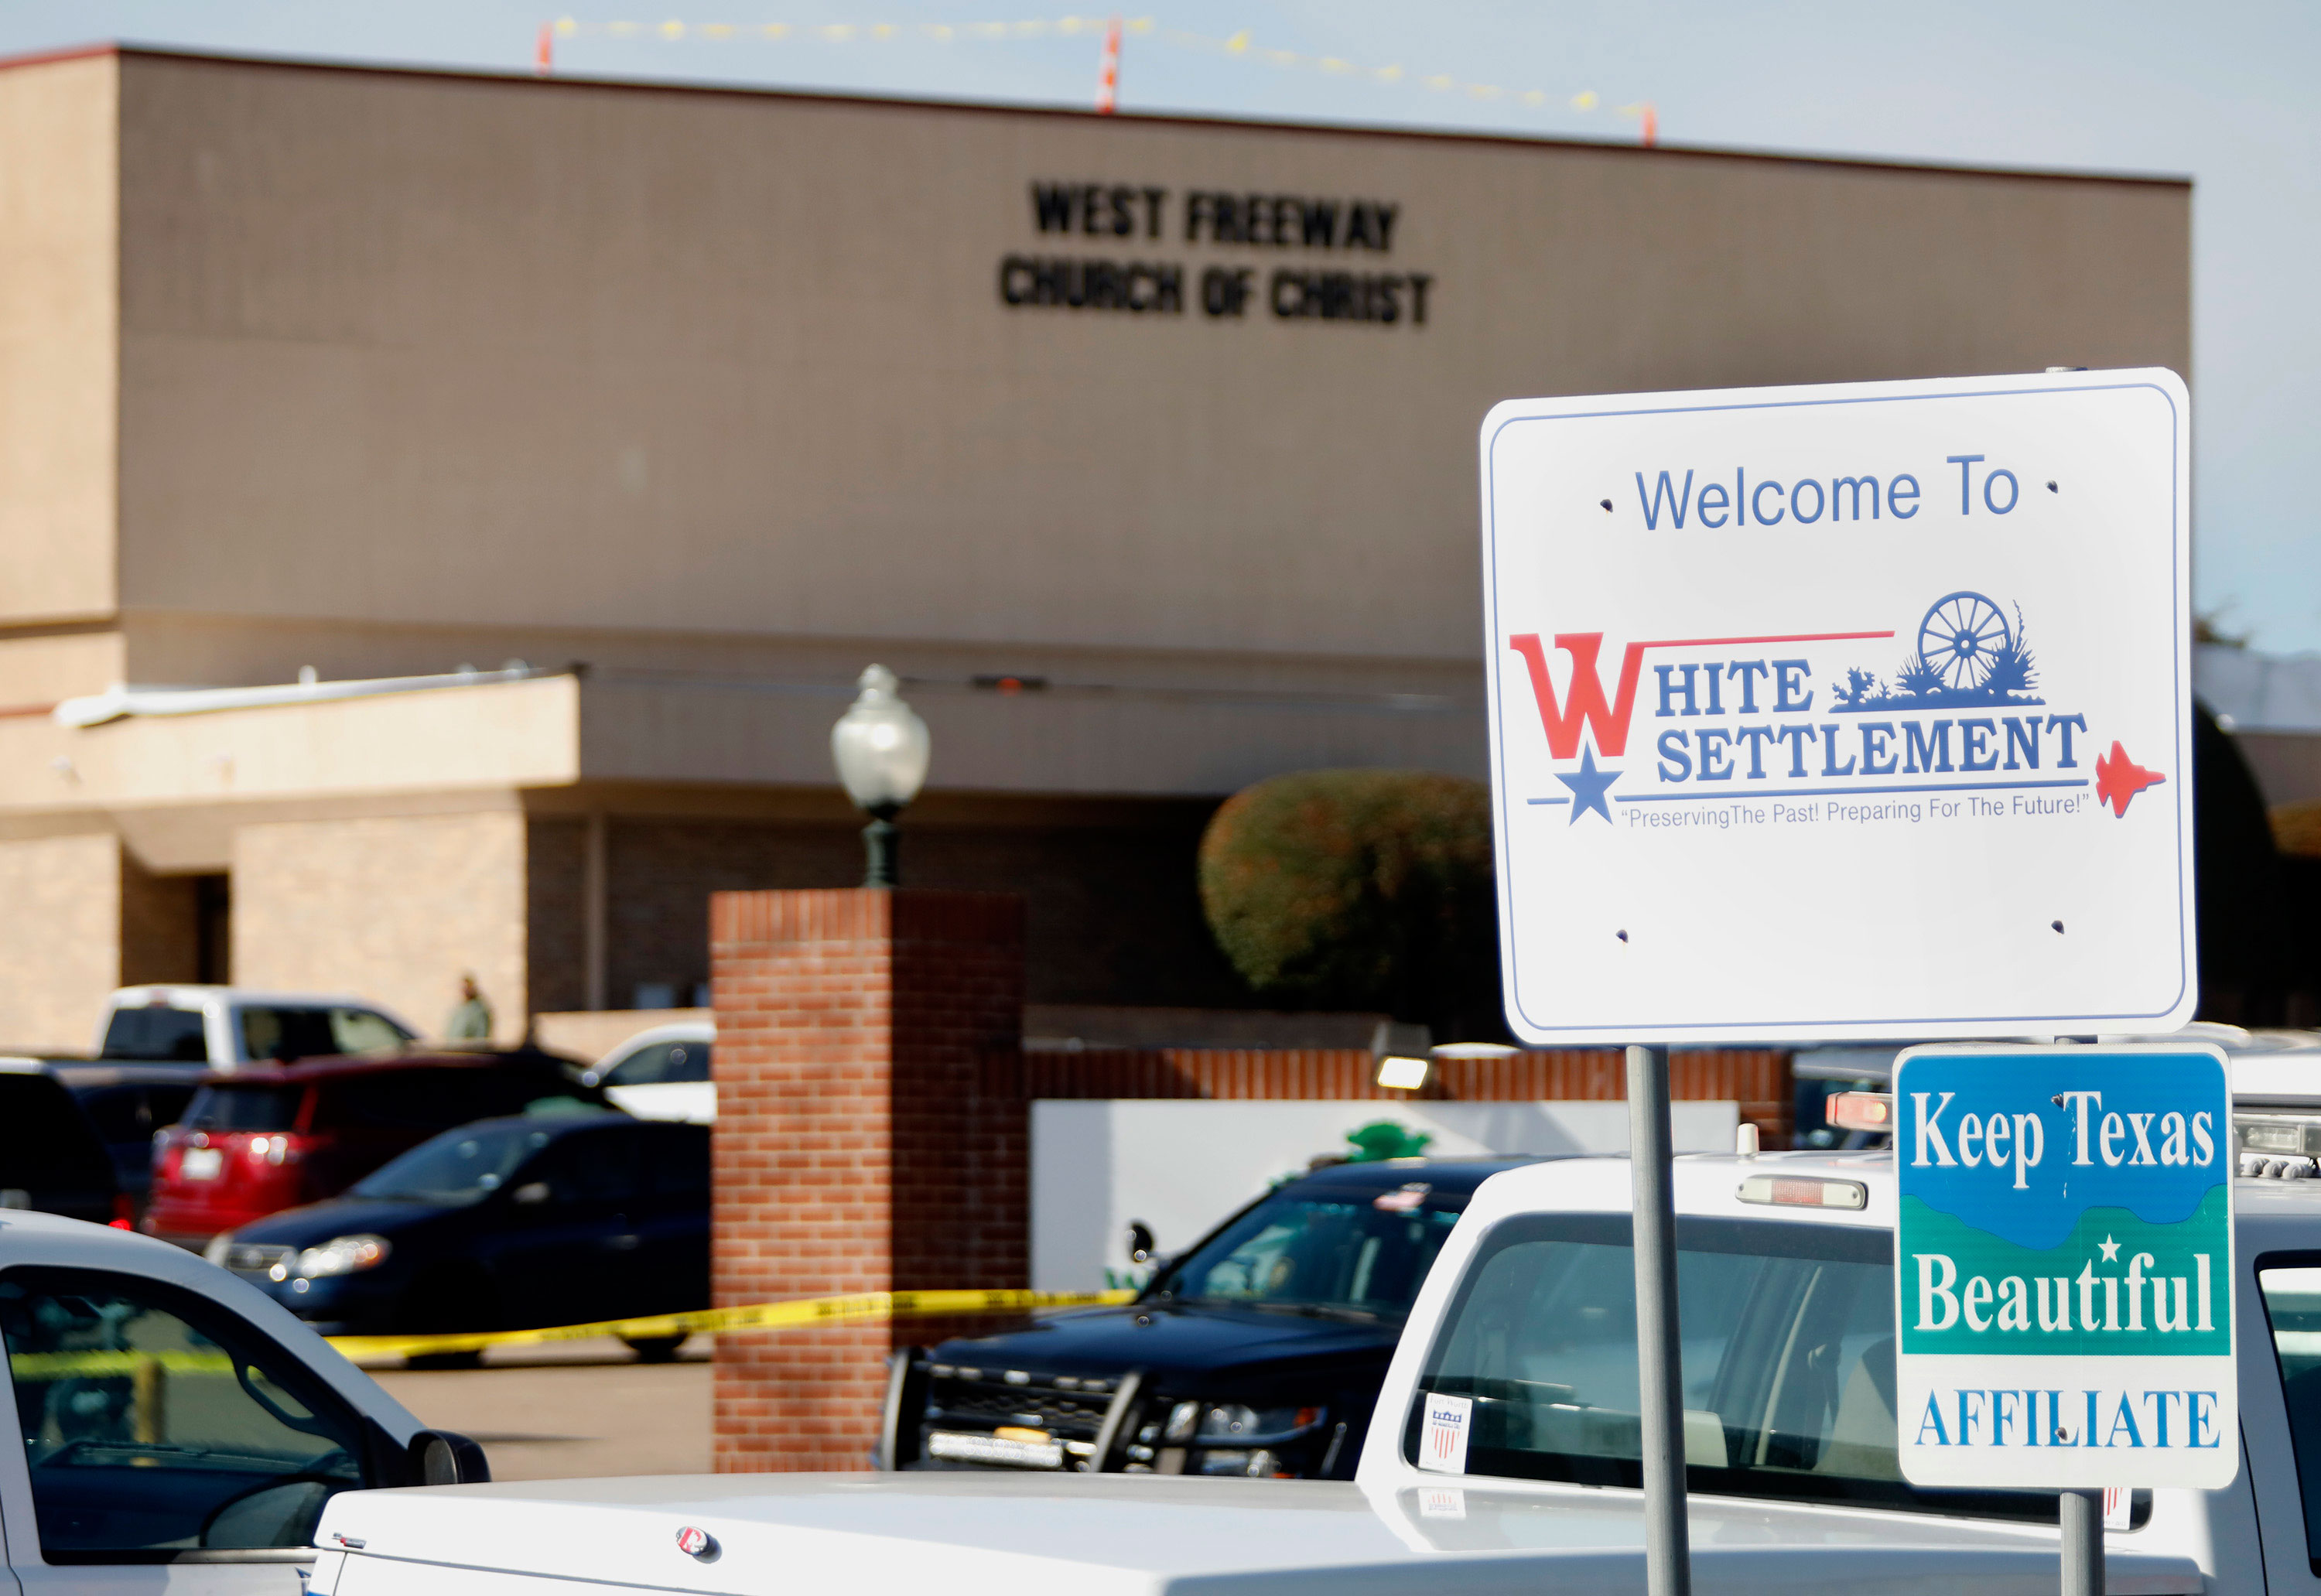 How White Settlement, the site of the deadly church shooting, got its name